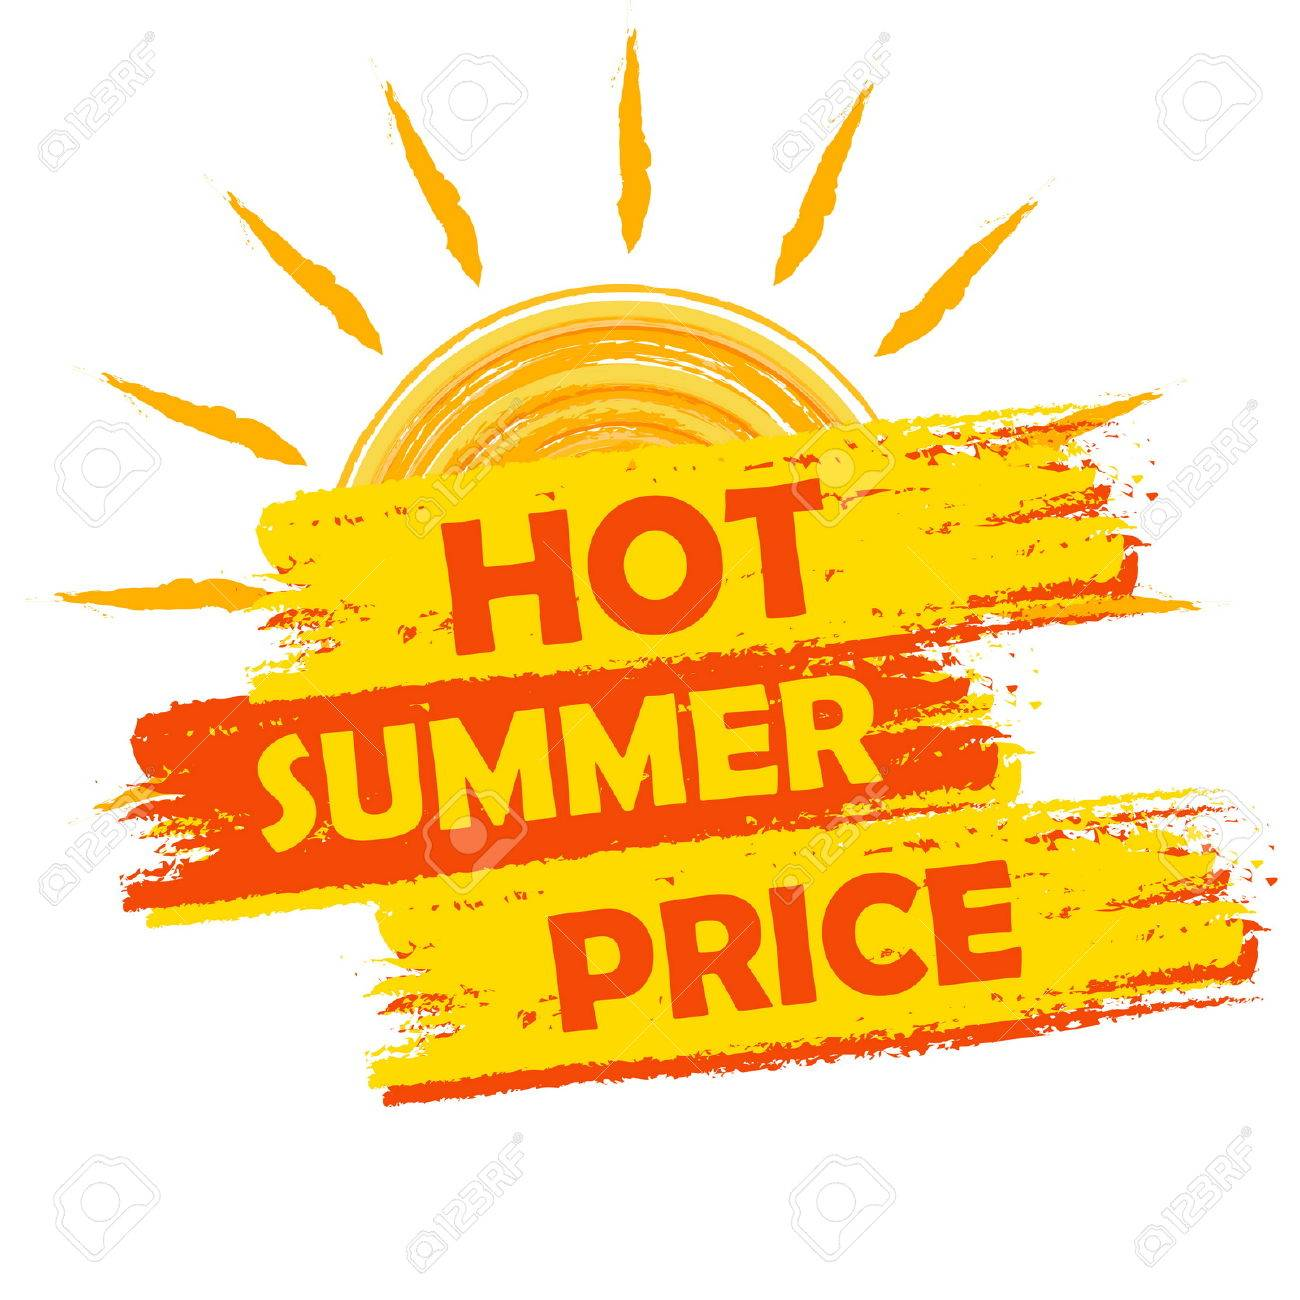 Hot Summer Price Banner Text In Yellow And Orange Drawn Label